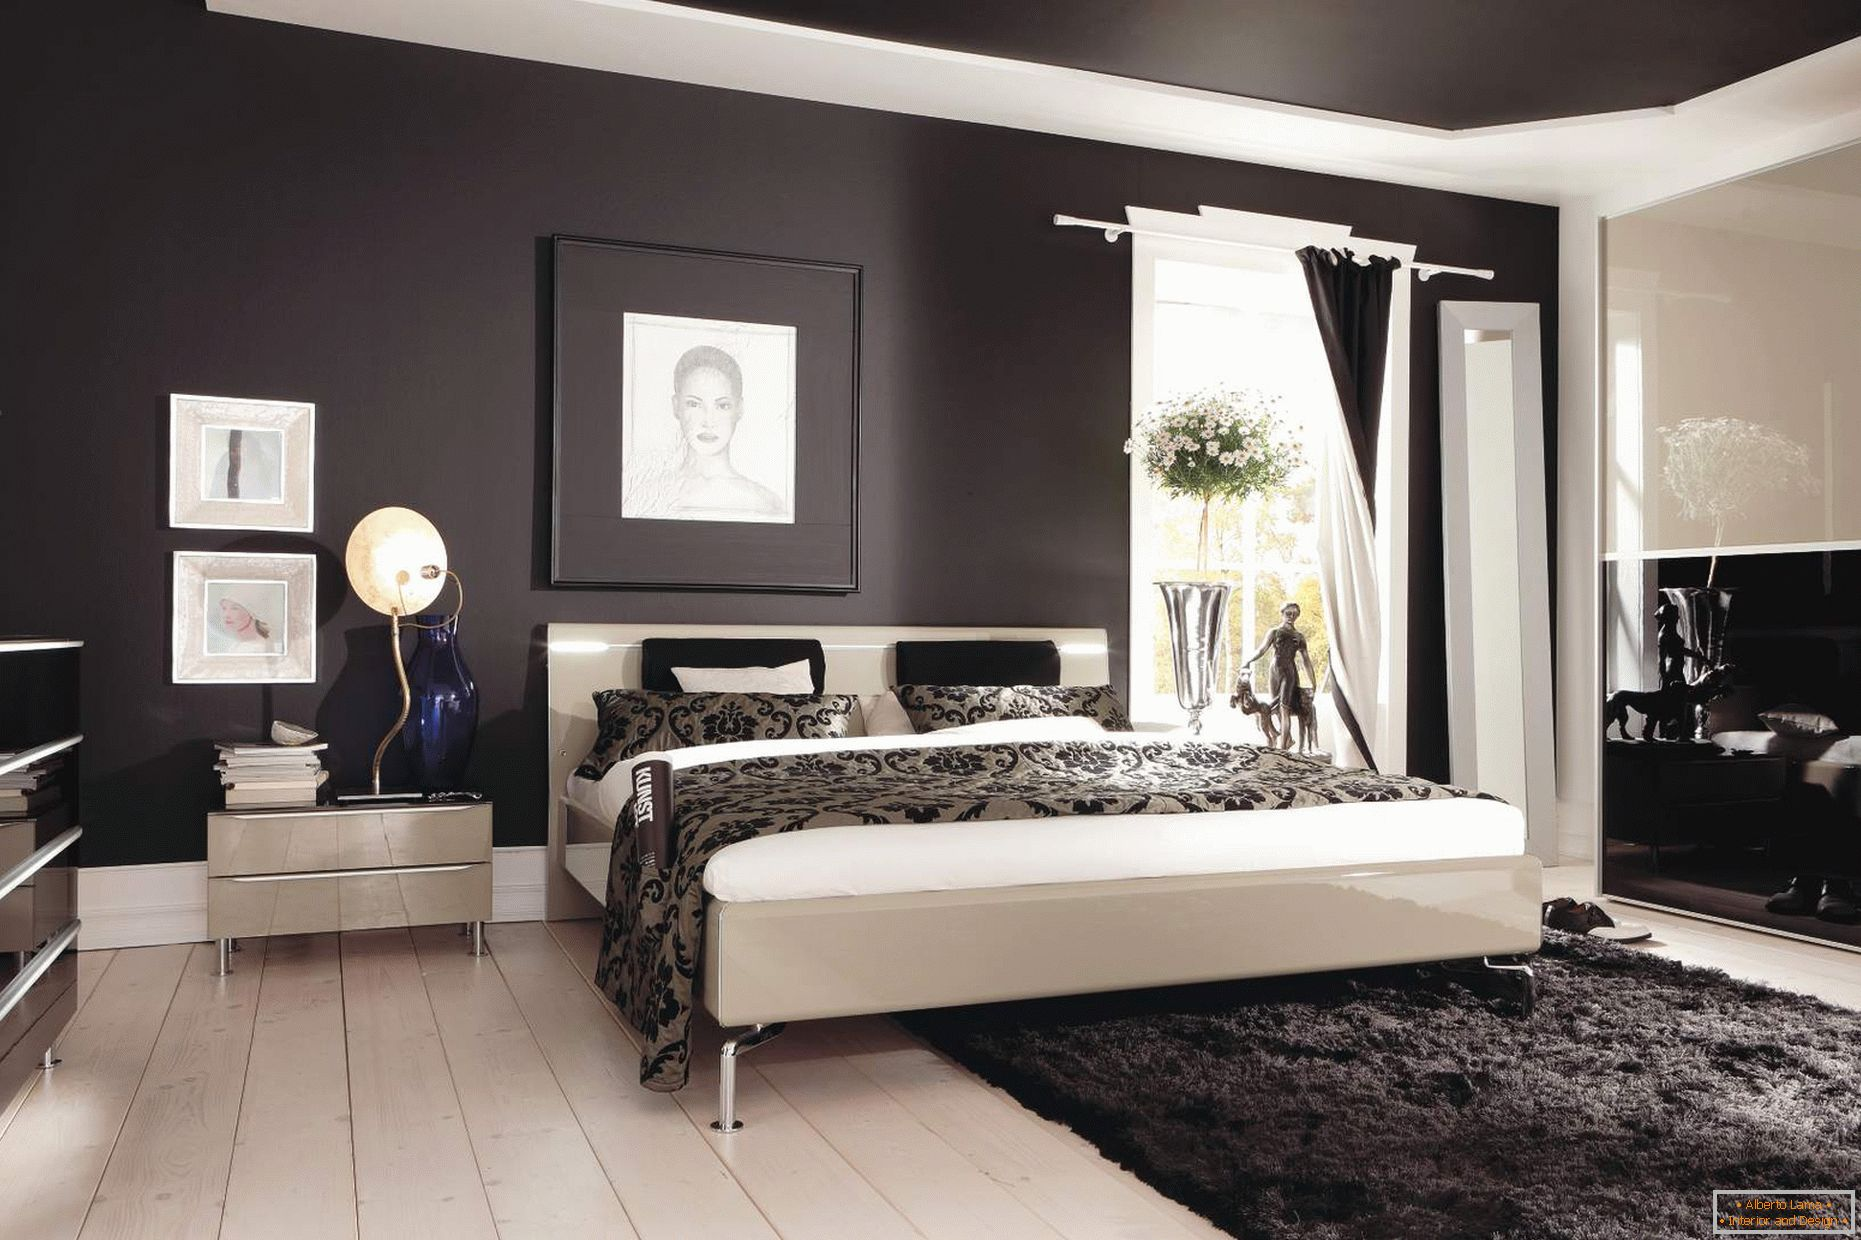 Black ceiling and walls in the bedroom